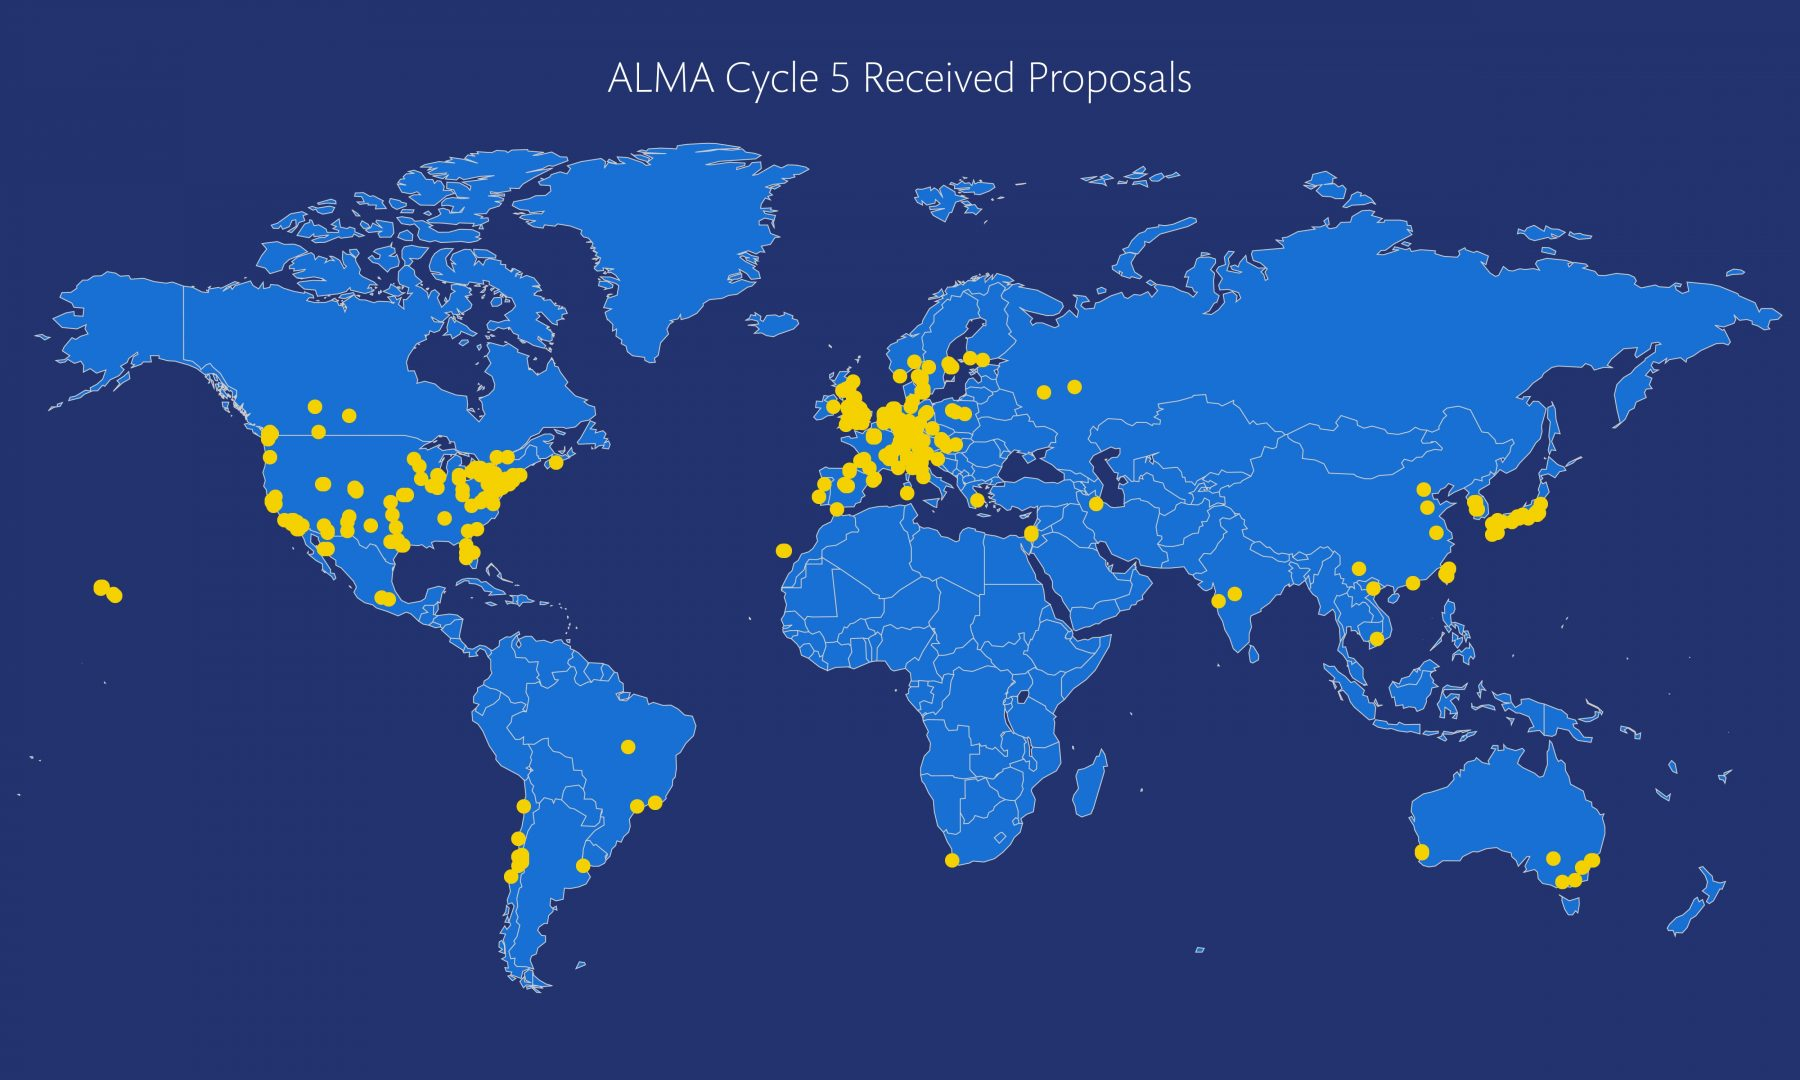 Geographycal distribution of Cycle 5 proposals